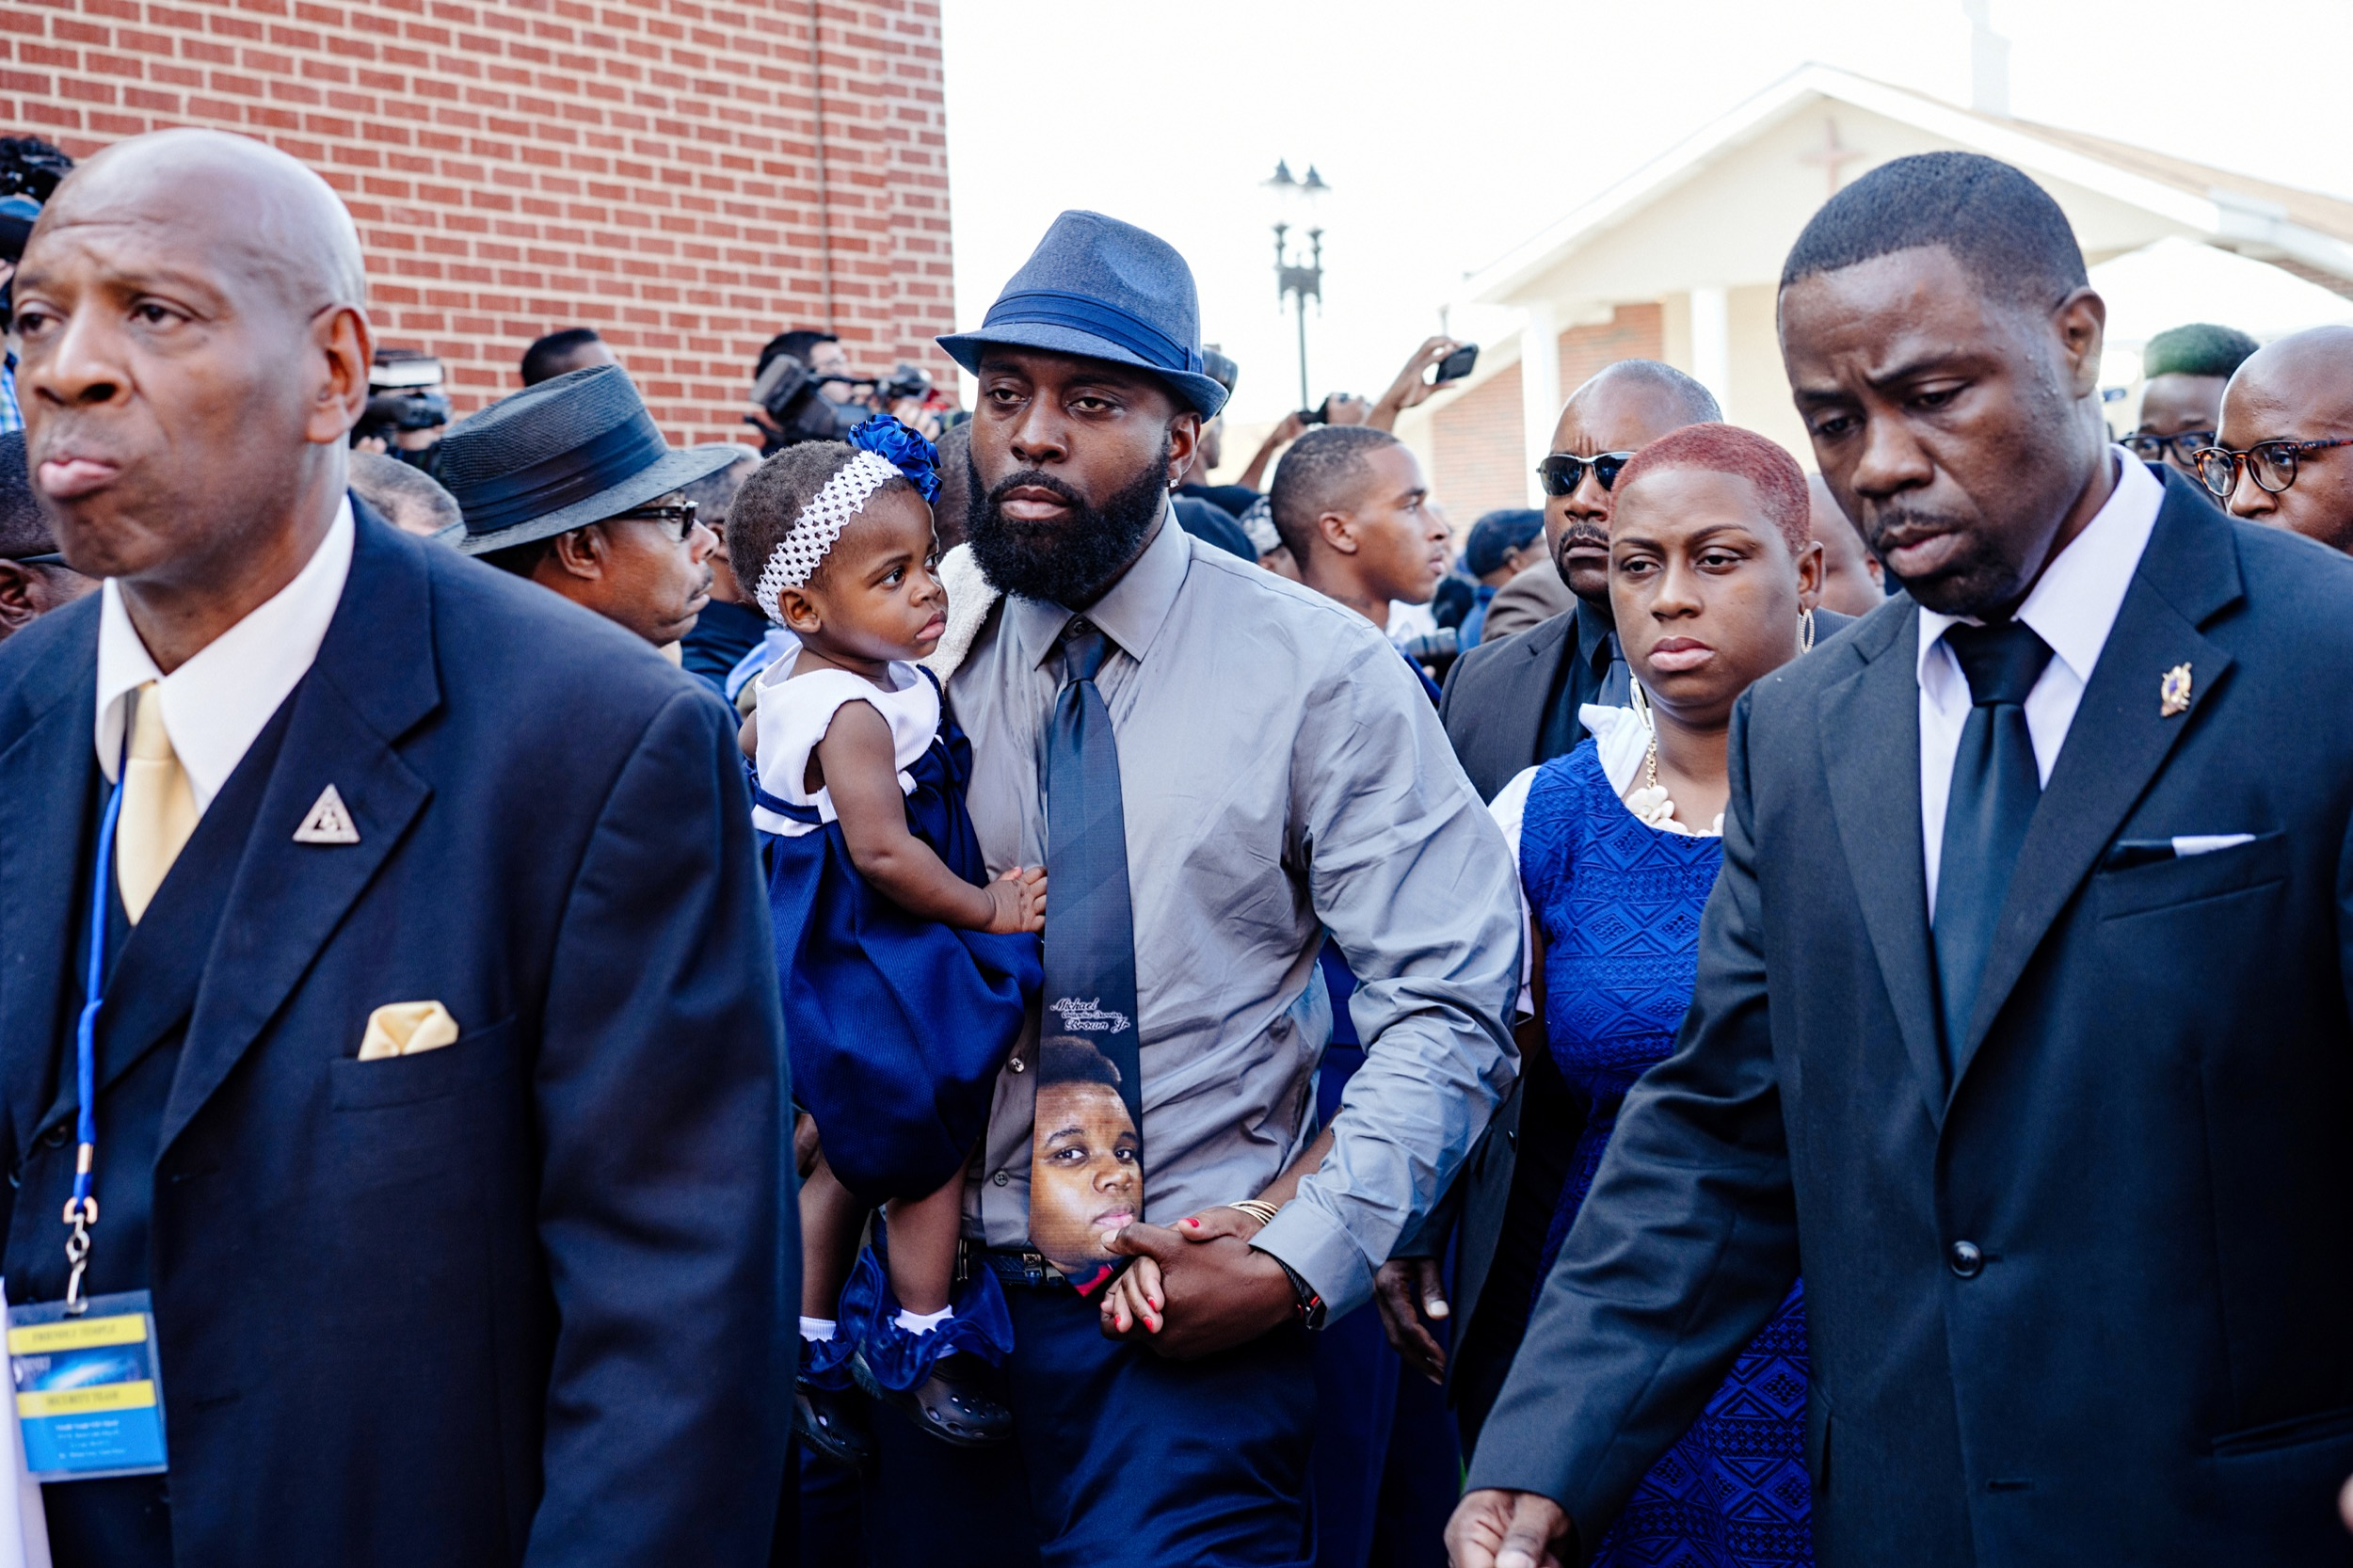 Michael Brown Sr. walks into the Friendly Temple Missionary Baptist Church, St. Louis, Missouri, to attend the funeral service of his son, Michael Brown Jr.